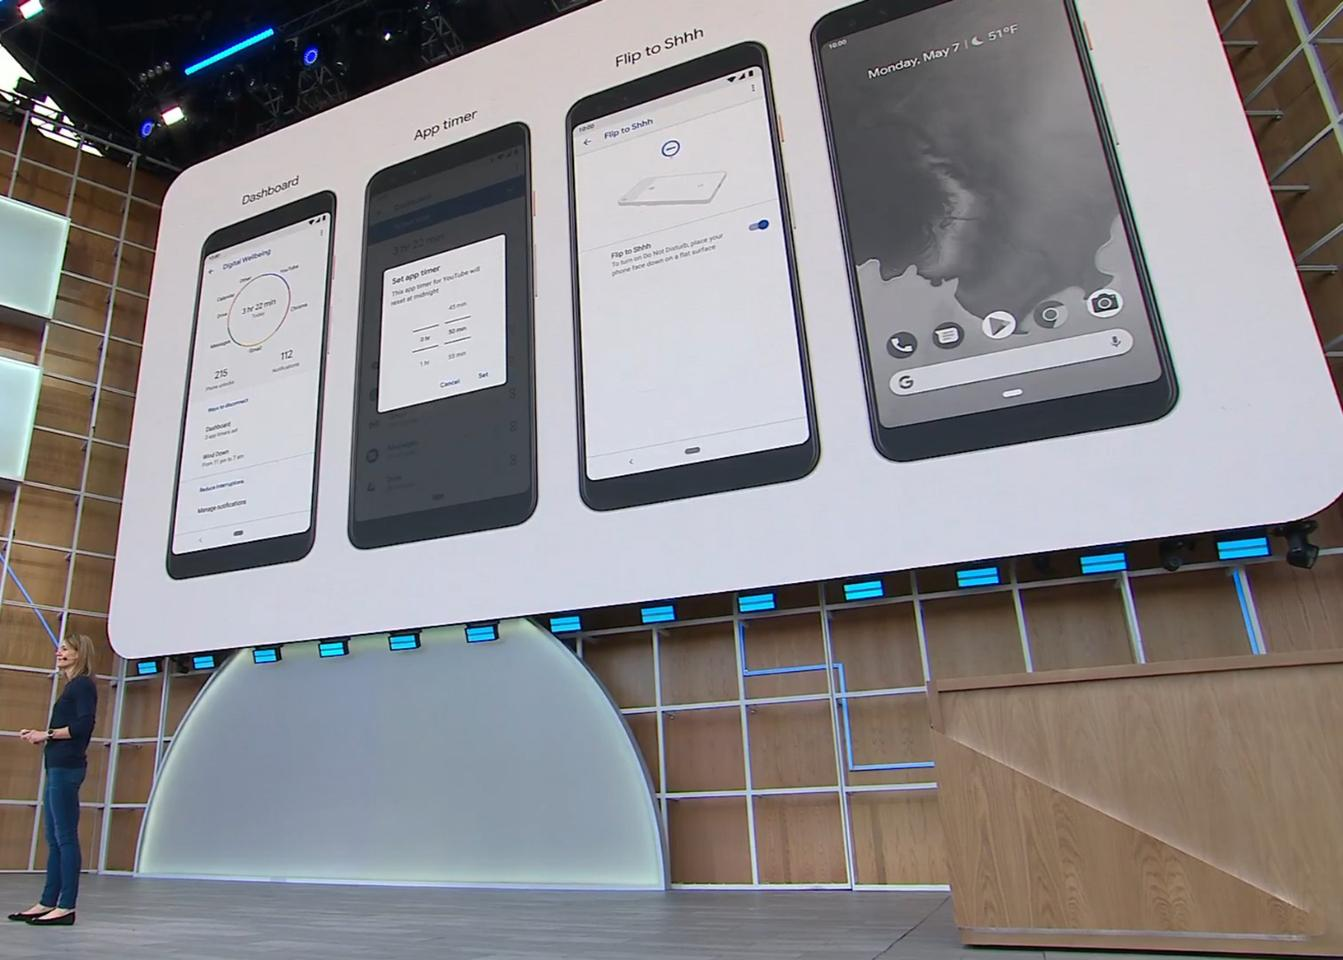 Google I/O 2019: Artificial intelligence and Android Q lead